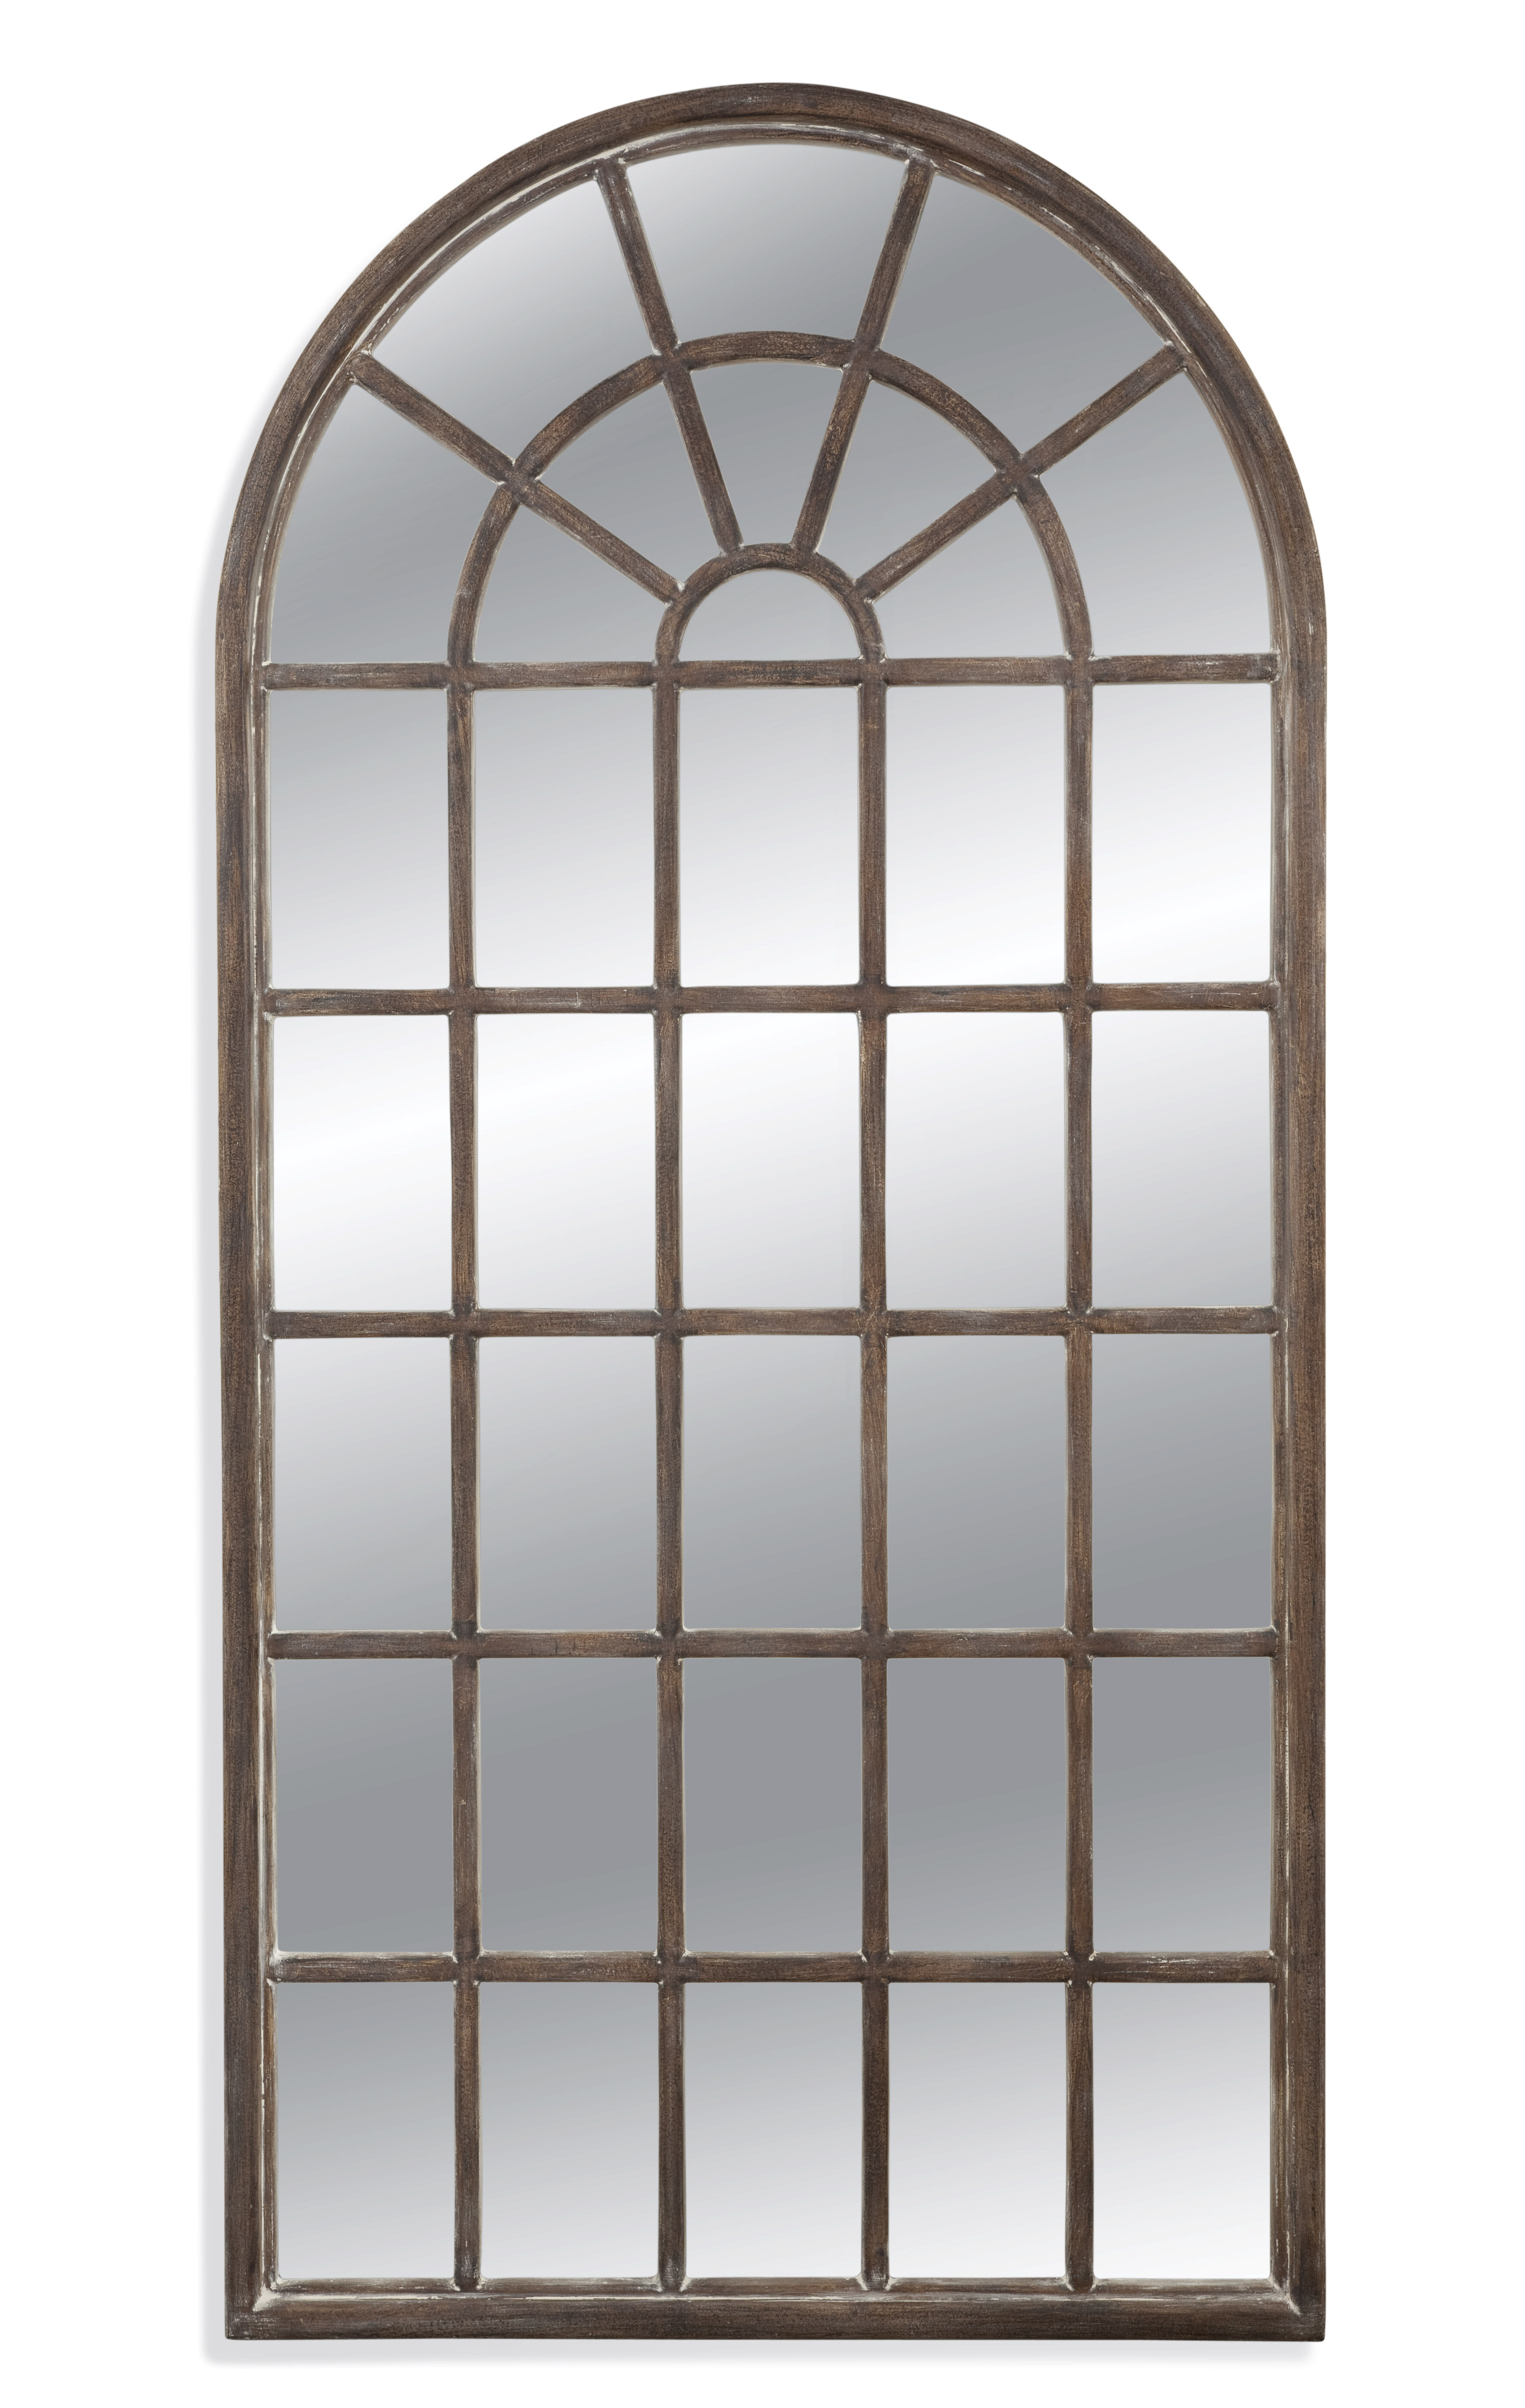 Arched Crowned Top Mirrors You Ll Love In 2021 Wayfair